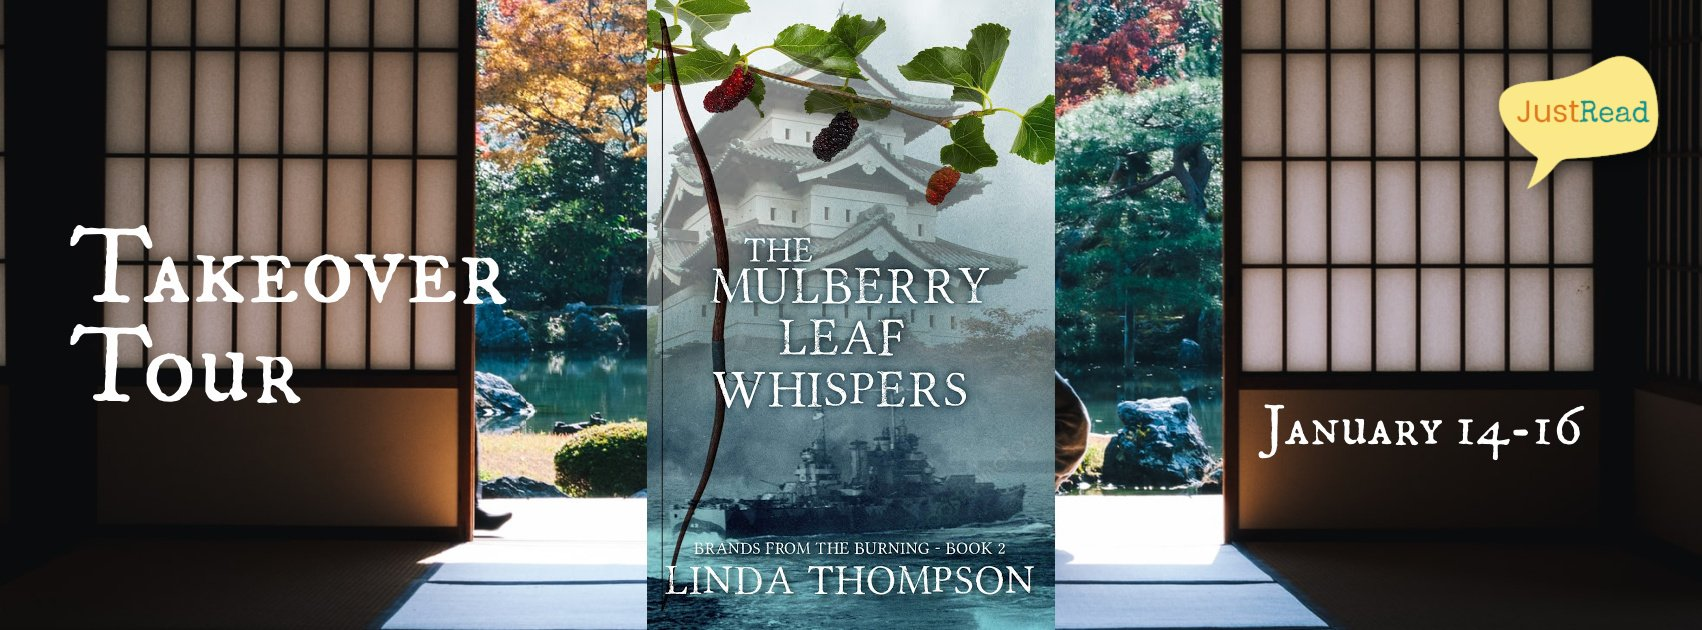 The Mulberry Leaf Whispers JustRead Takeover Tour